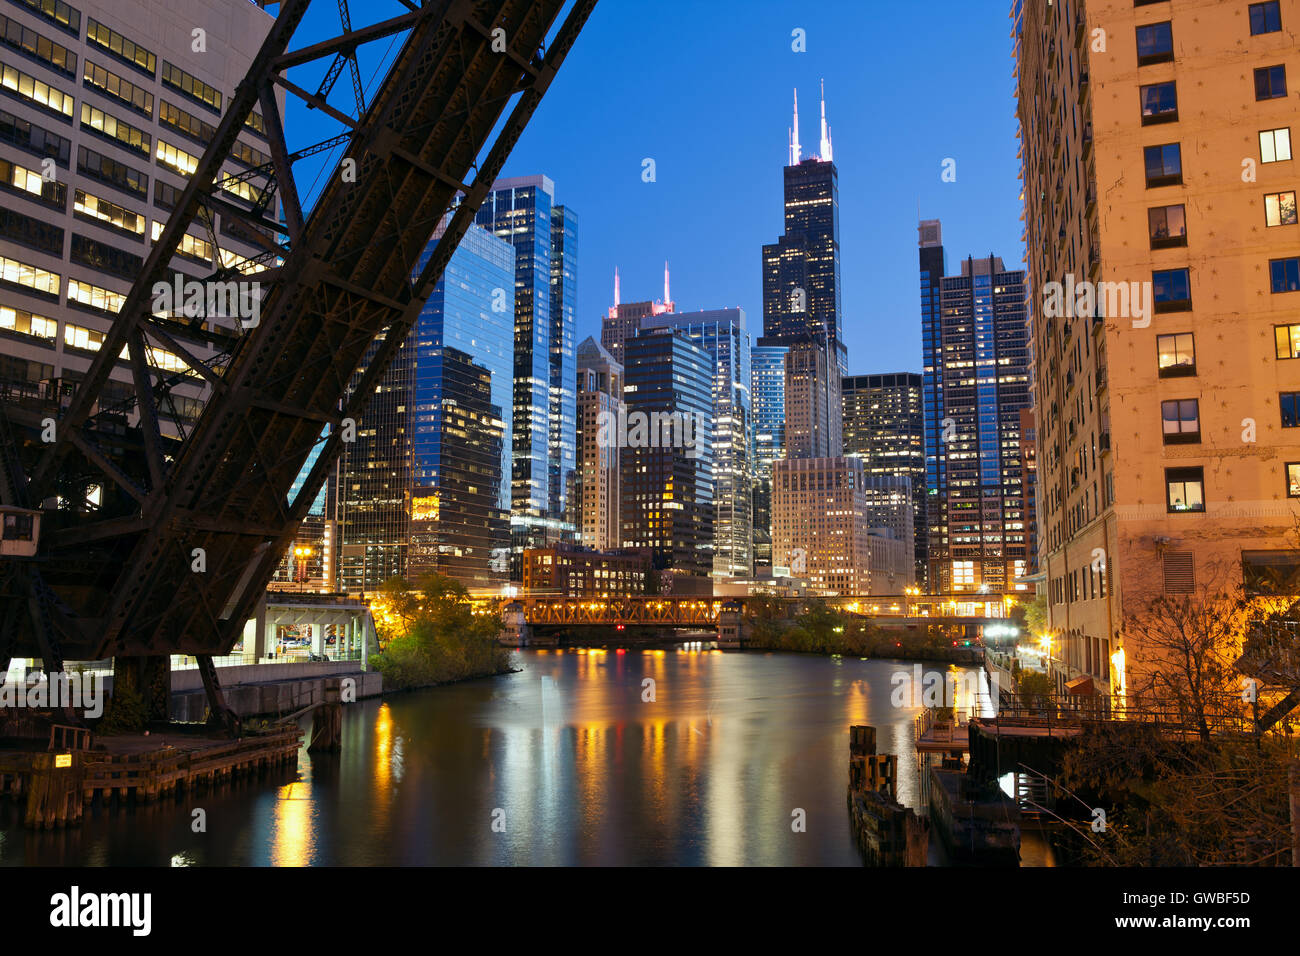 Chicago downtown riverside. Image of Chicago downtown area at twilight. - Stock Image